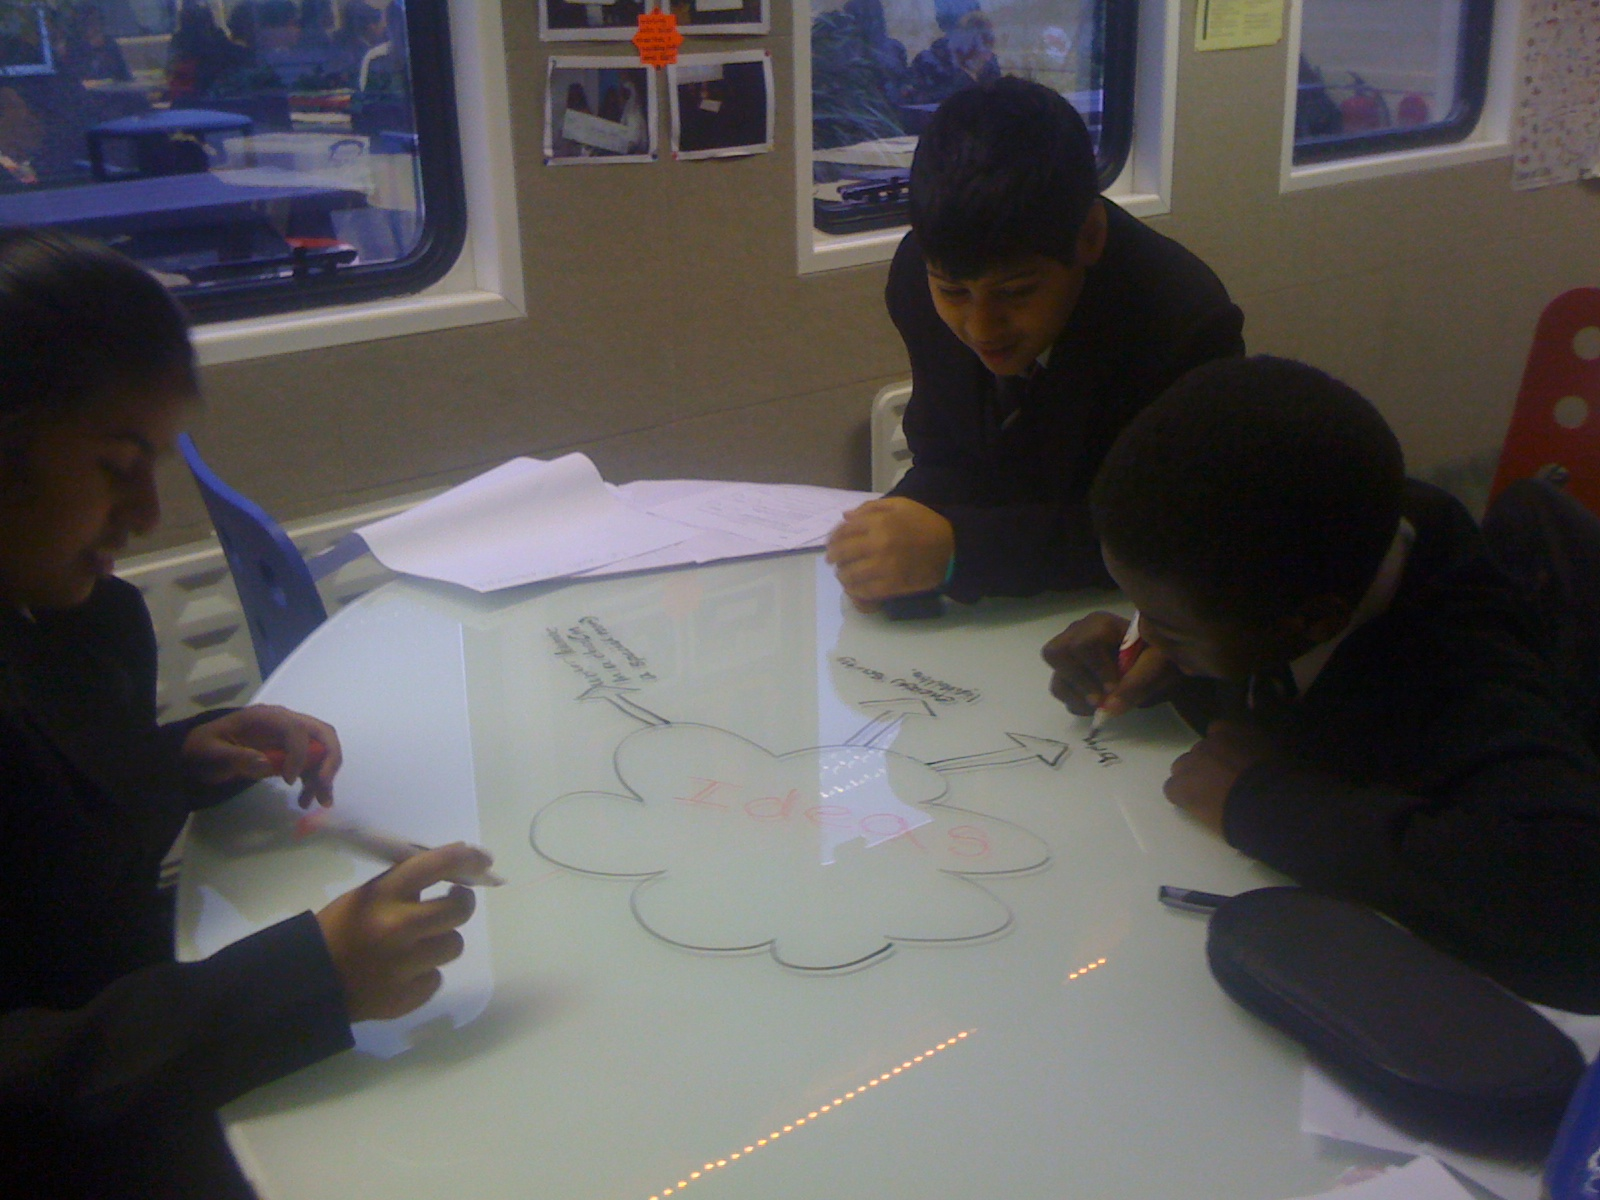 writing on surfaces in learning spaces